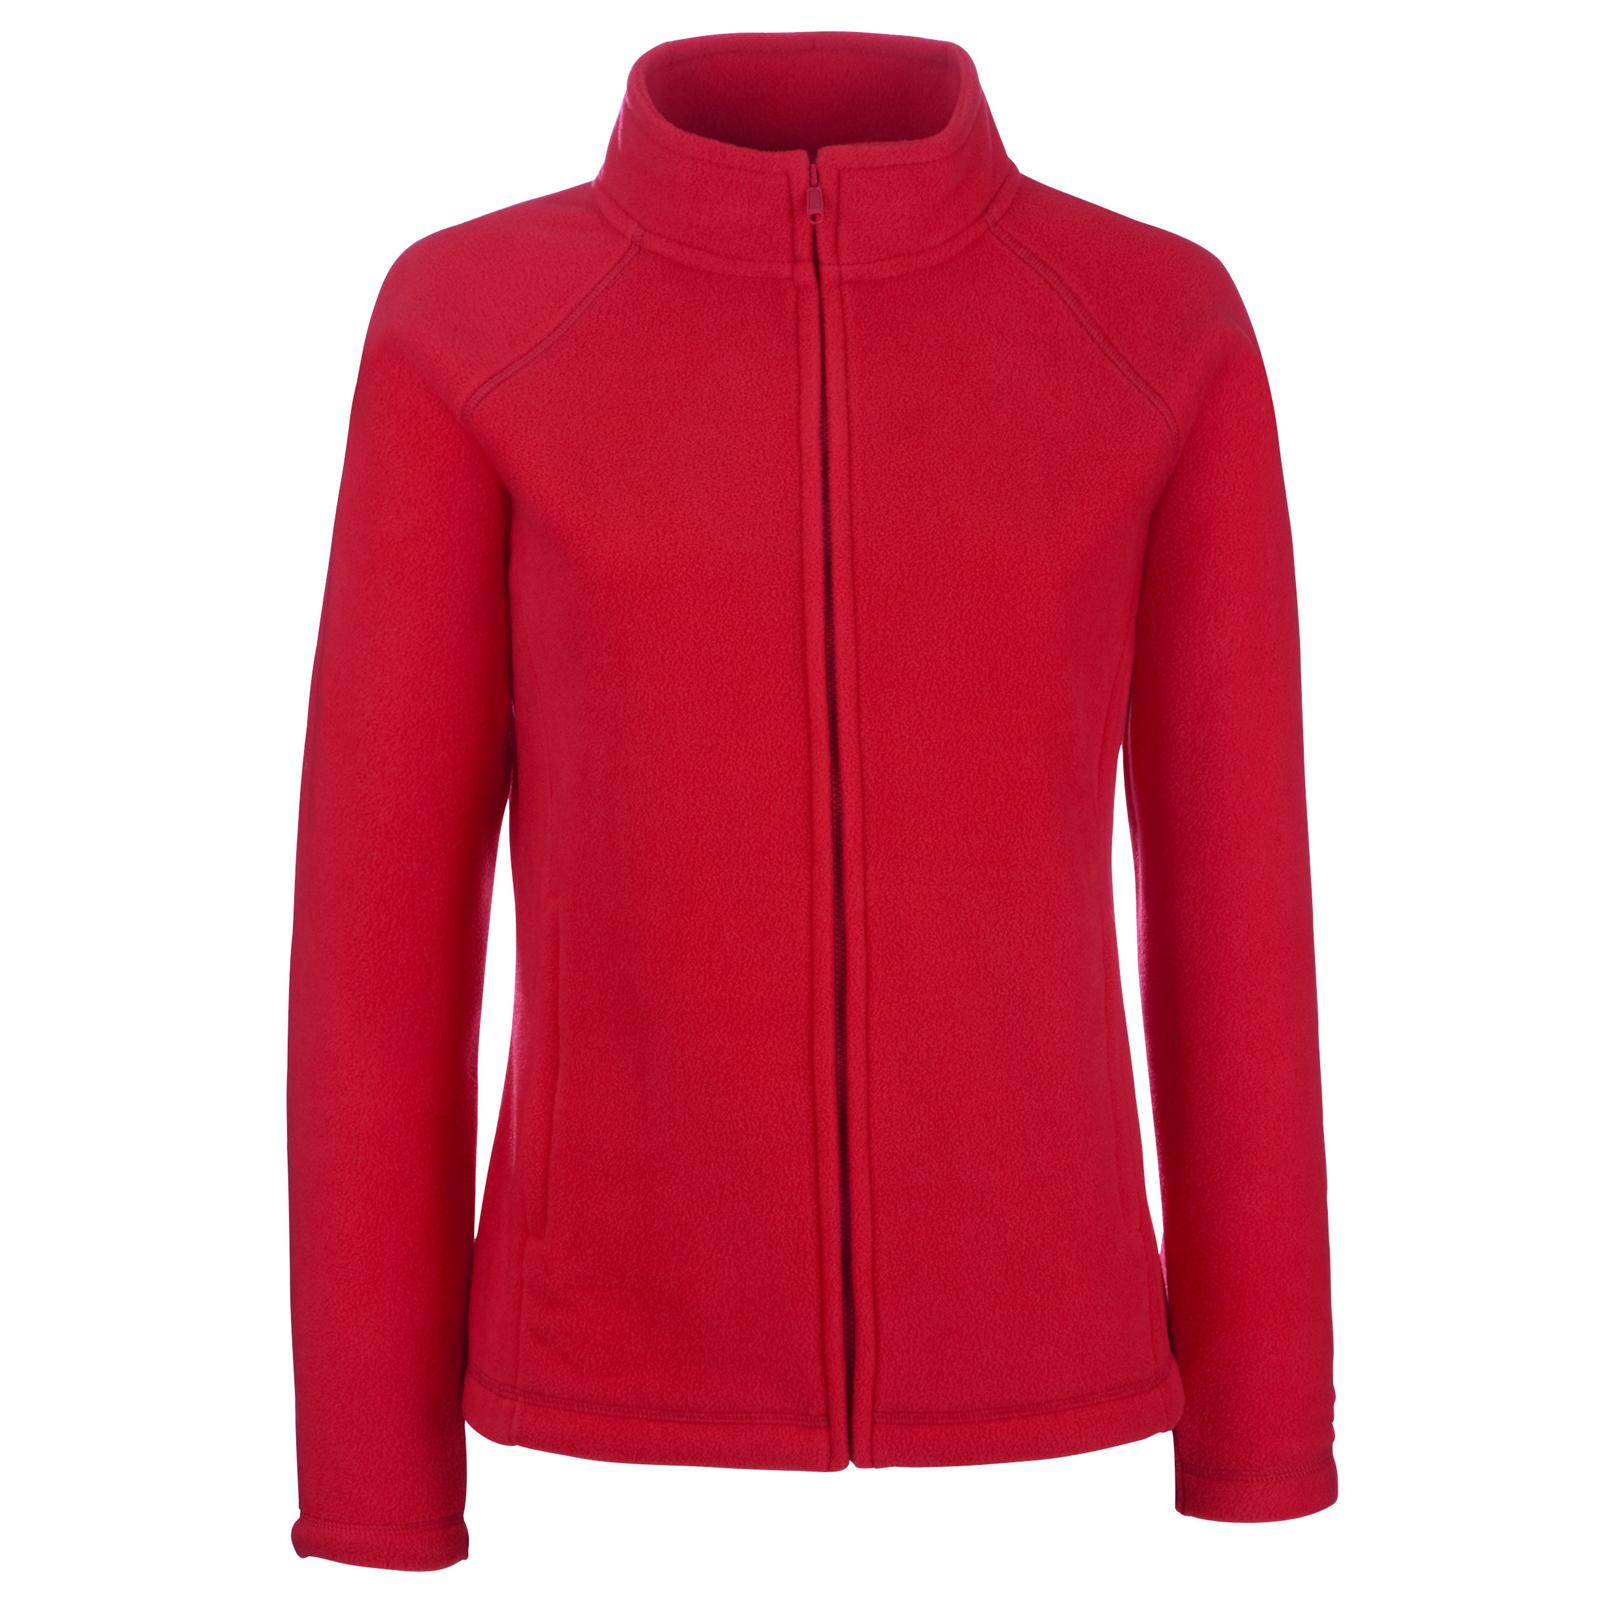 New Fruit of the Loom Womens Ladies Fitted Zip Fleece Jacket 5 ...